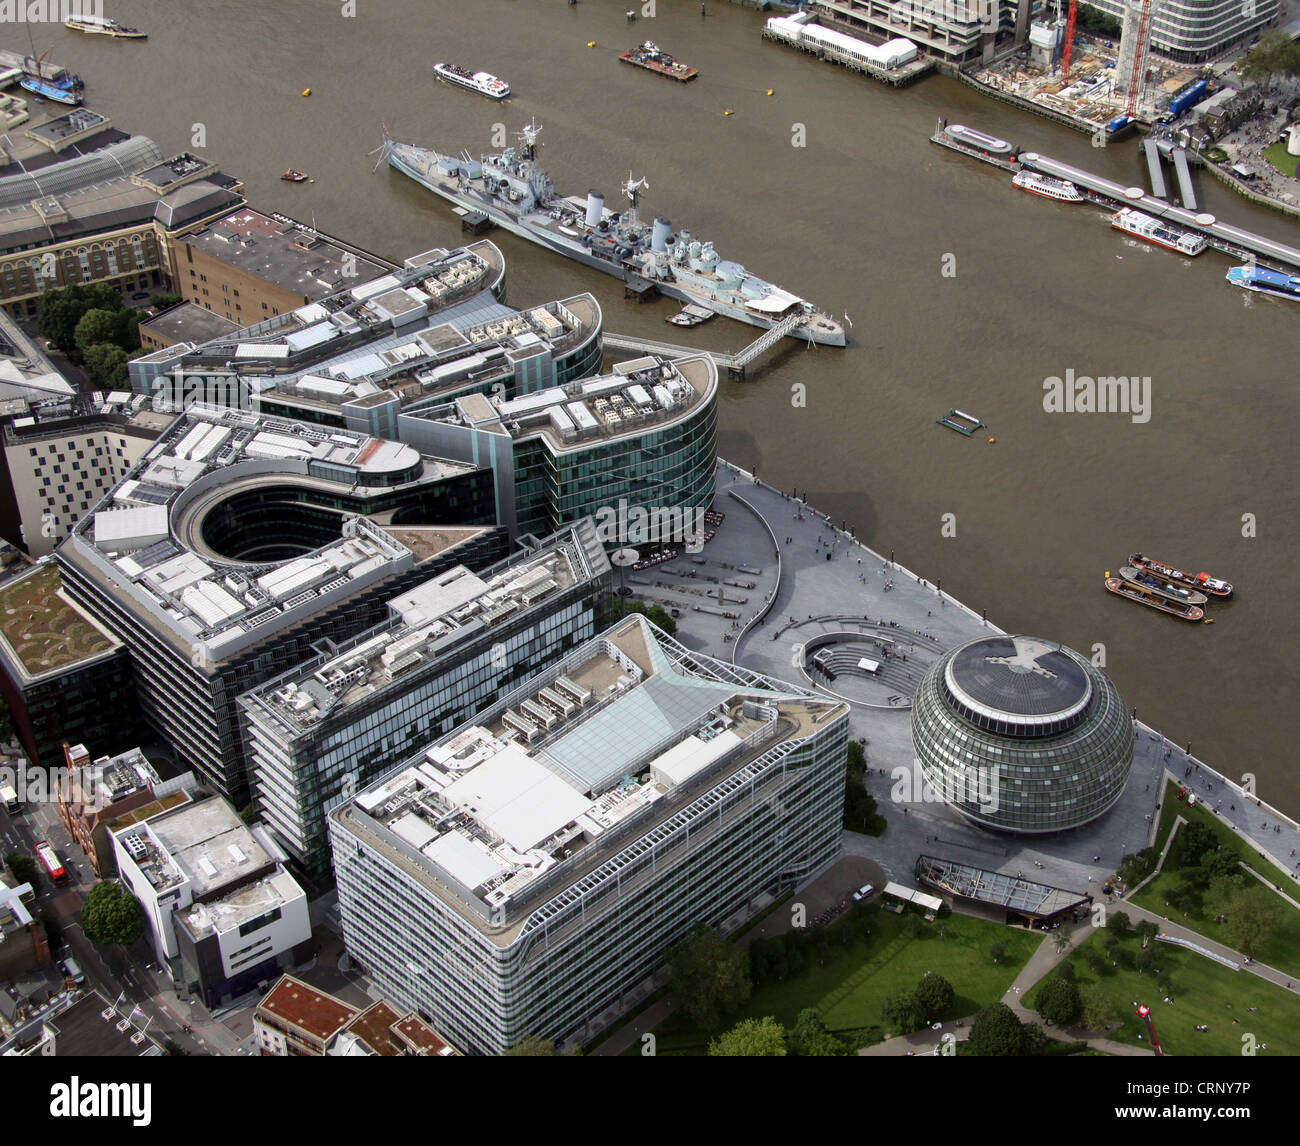 aerial view of HMS Belfast and London City Hall, London SE1 - Stock Image